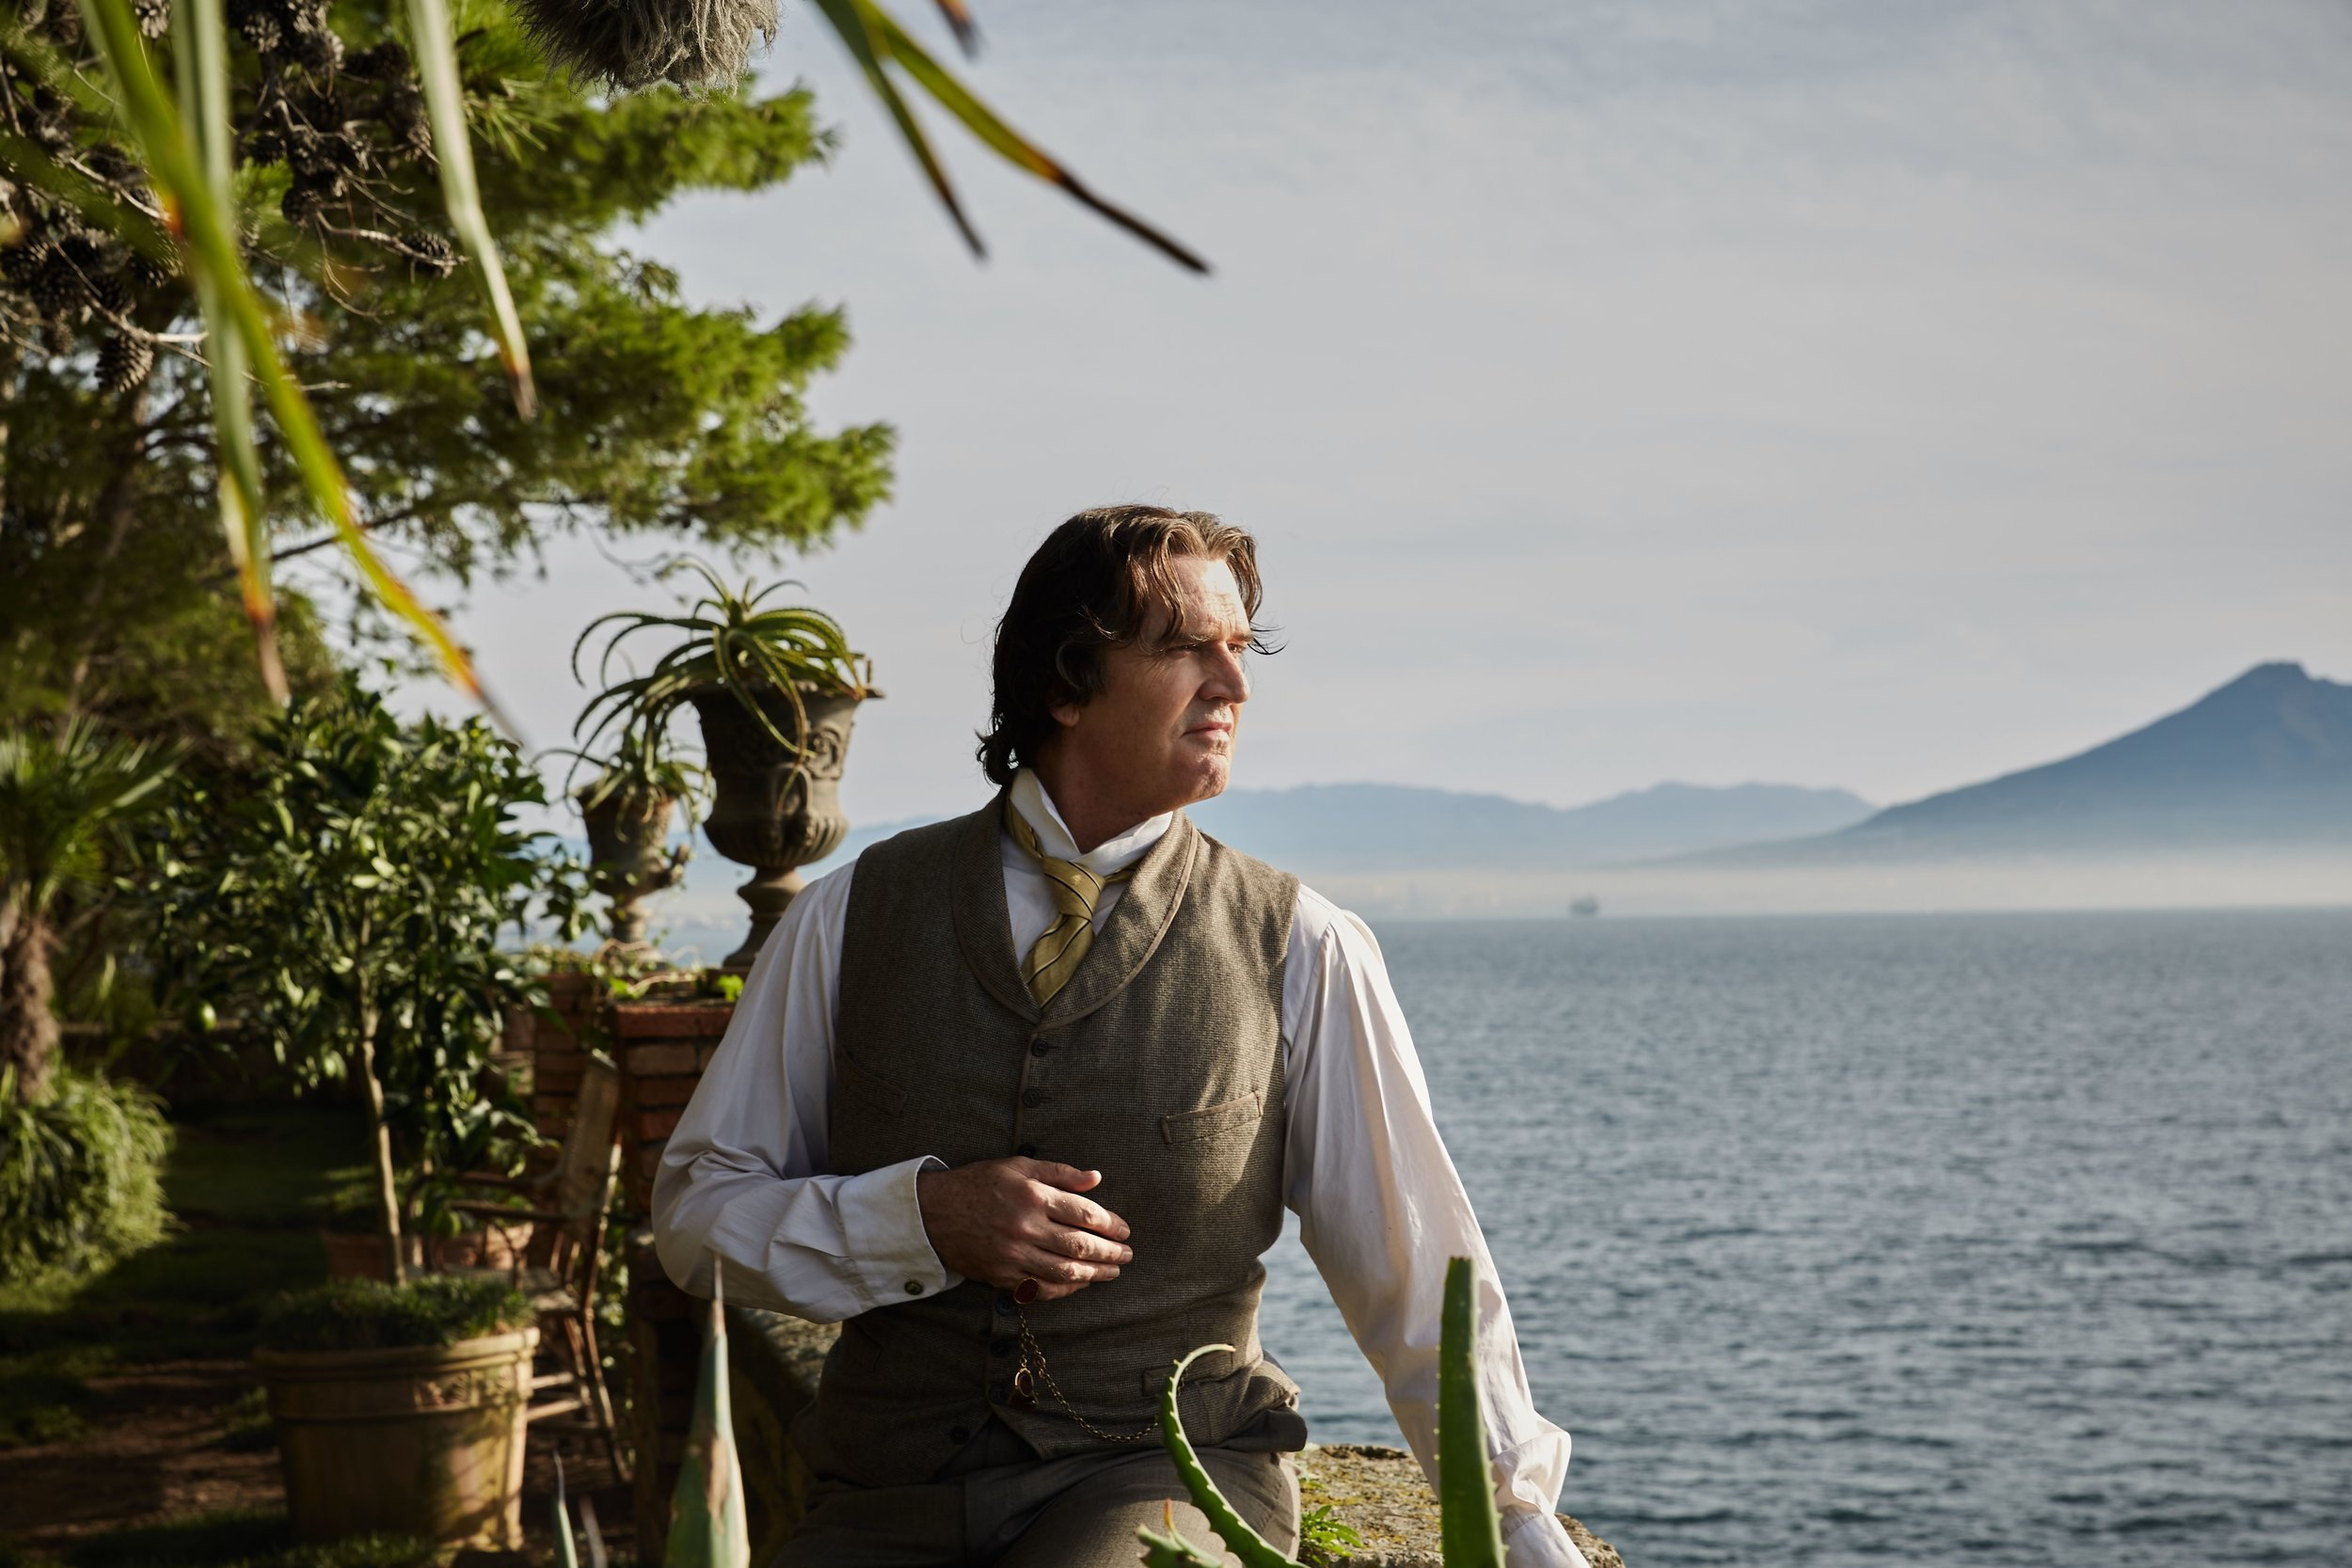 Rupert Everett as Oscar Wilde  Photo by Wilhelm Moser, Courtesy of Sony Pictures Classics